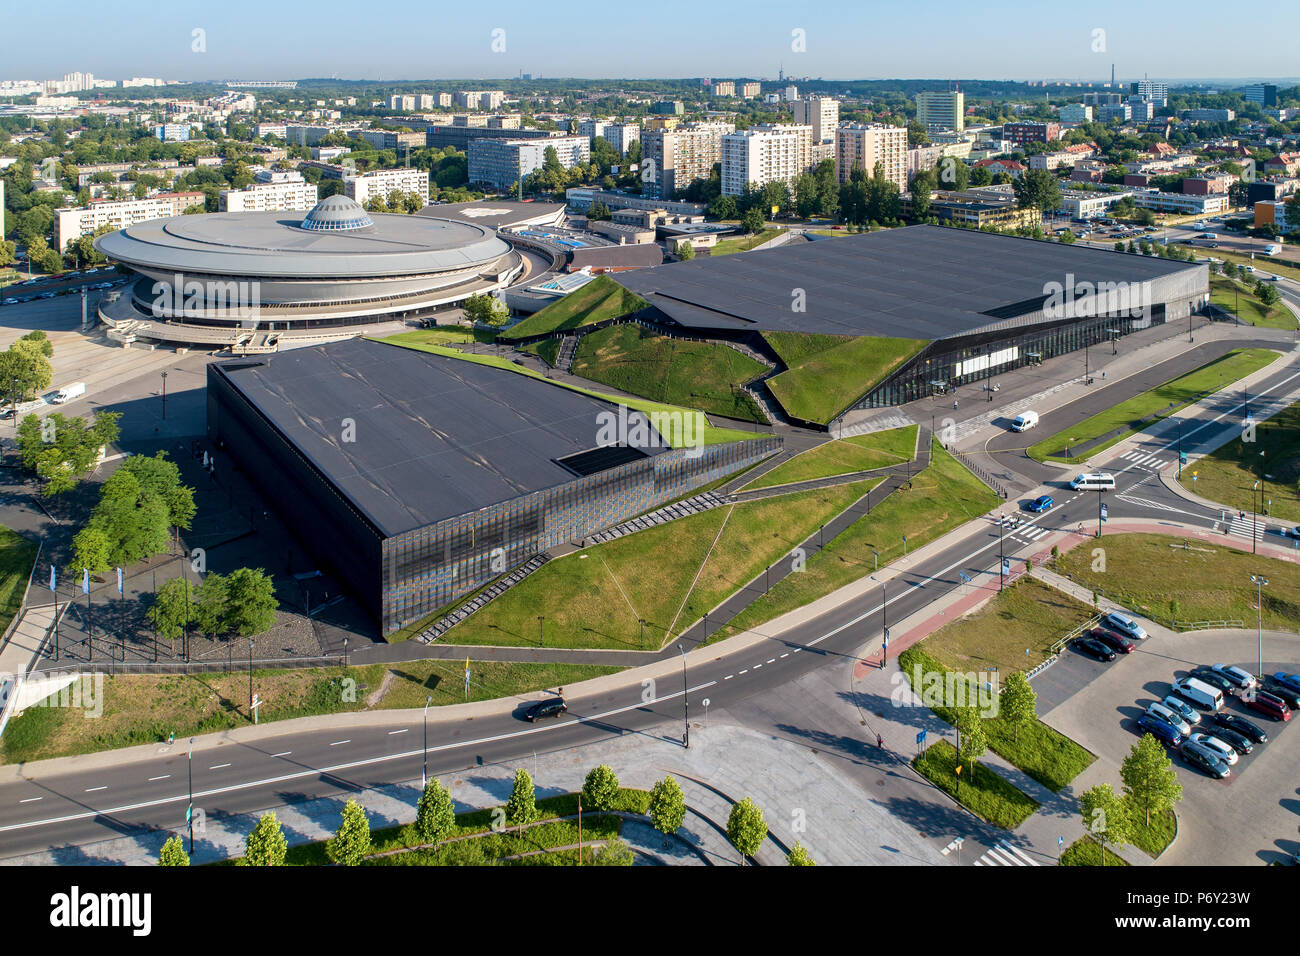 Aerial view of Katowice city center with spodek (saucer) sport and entertainment venue, artificial canyon , international conference center and blocks Stock Photo